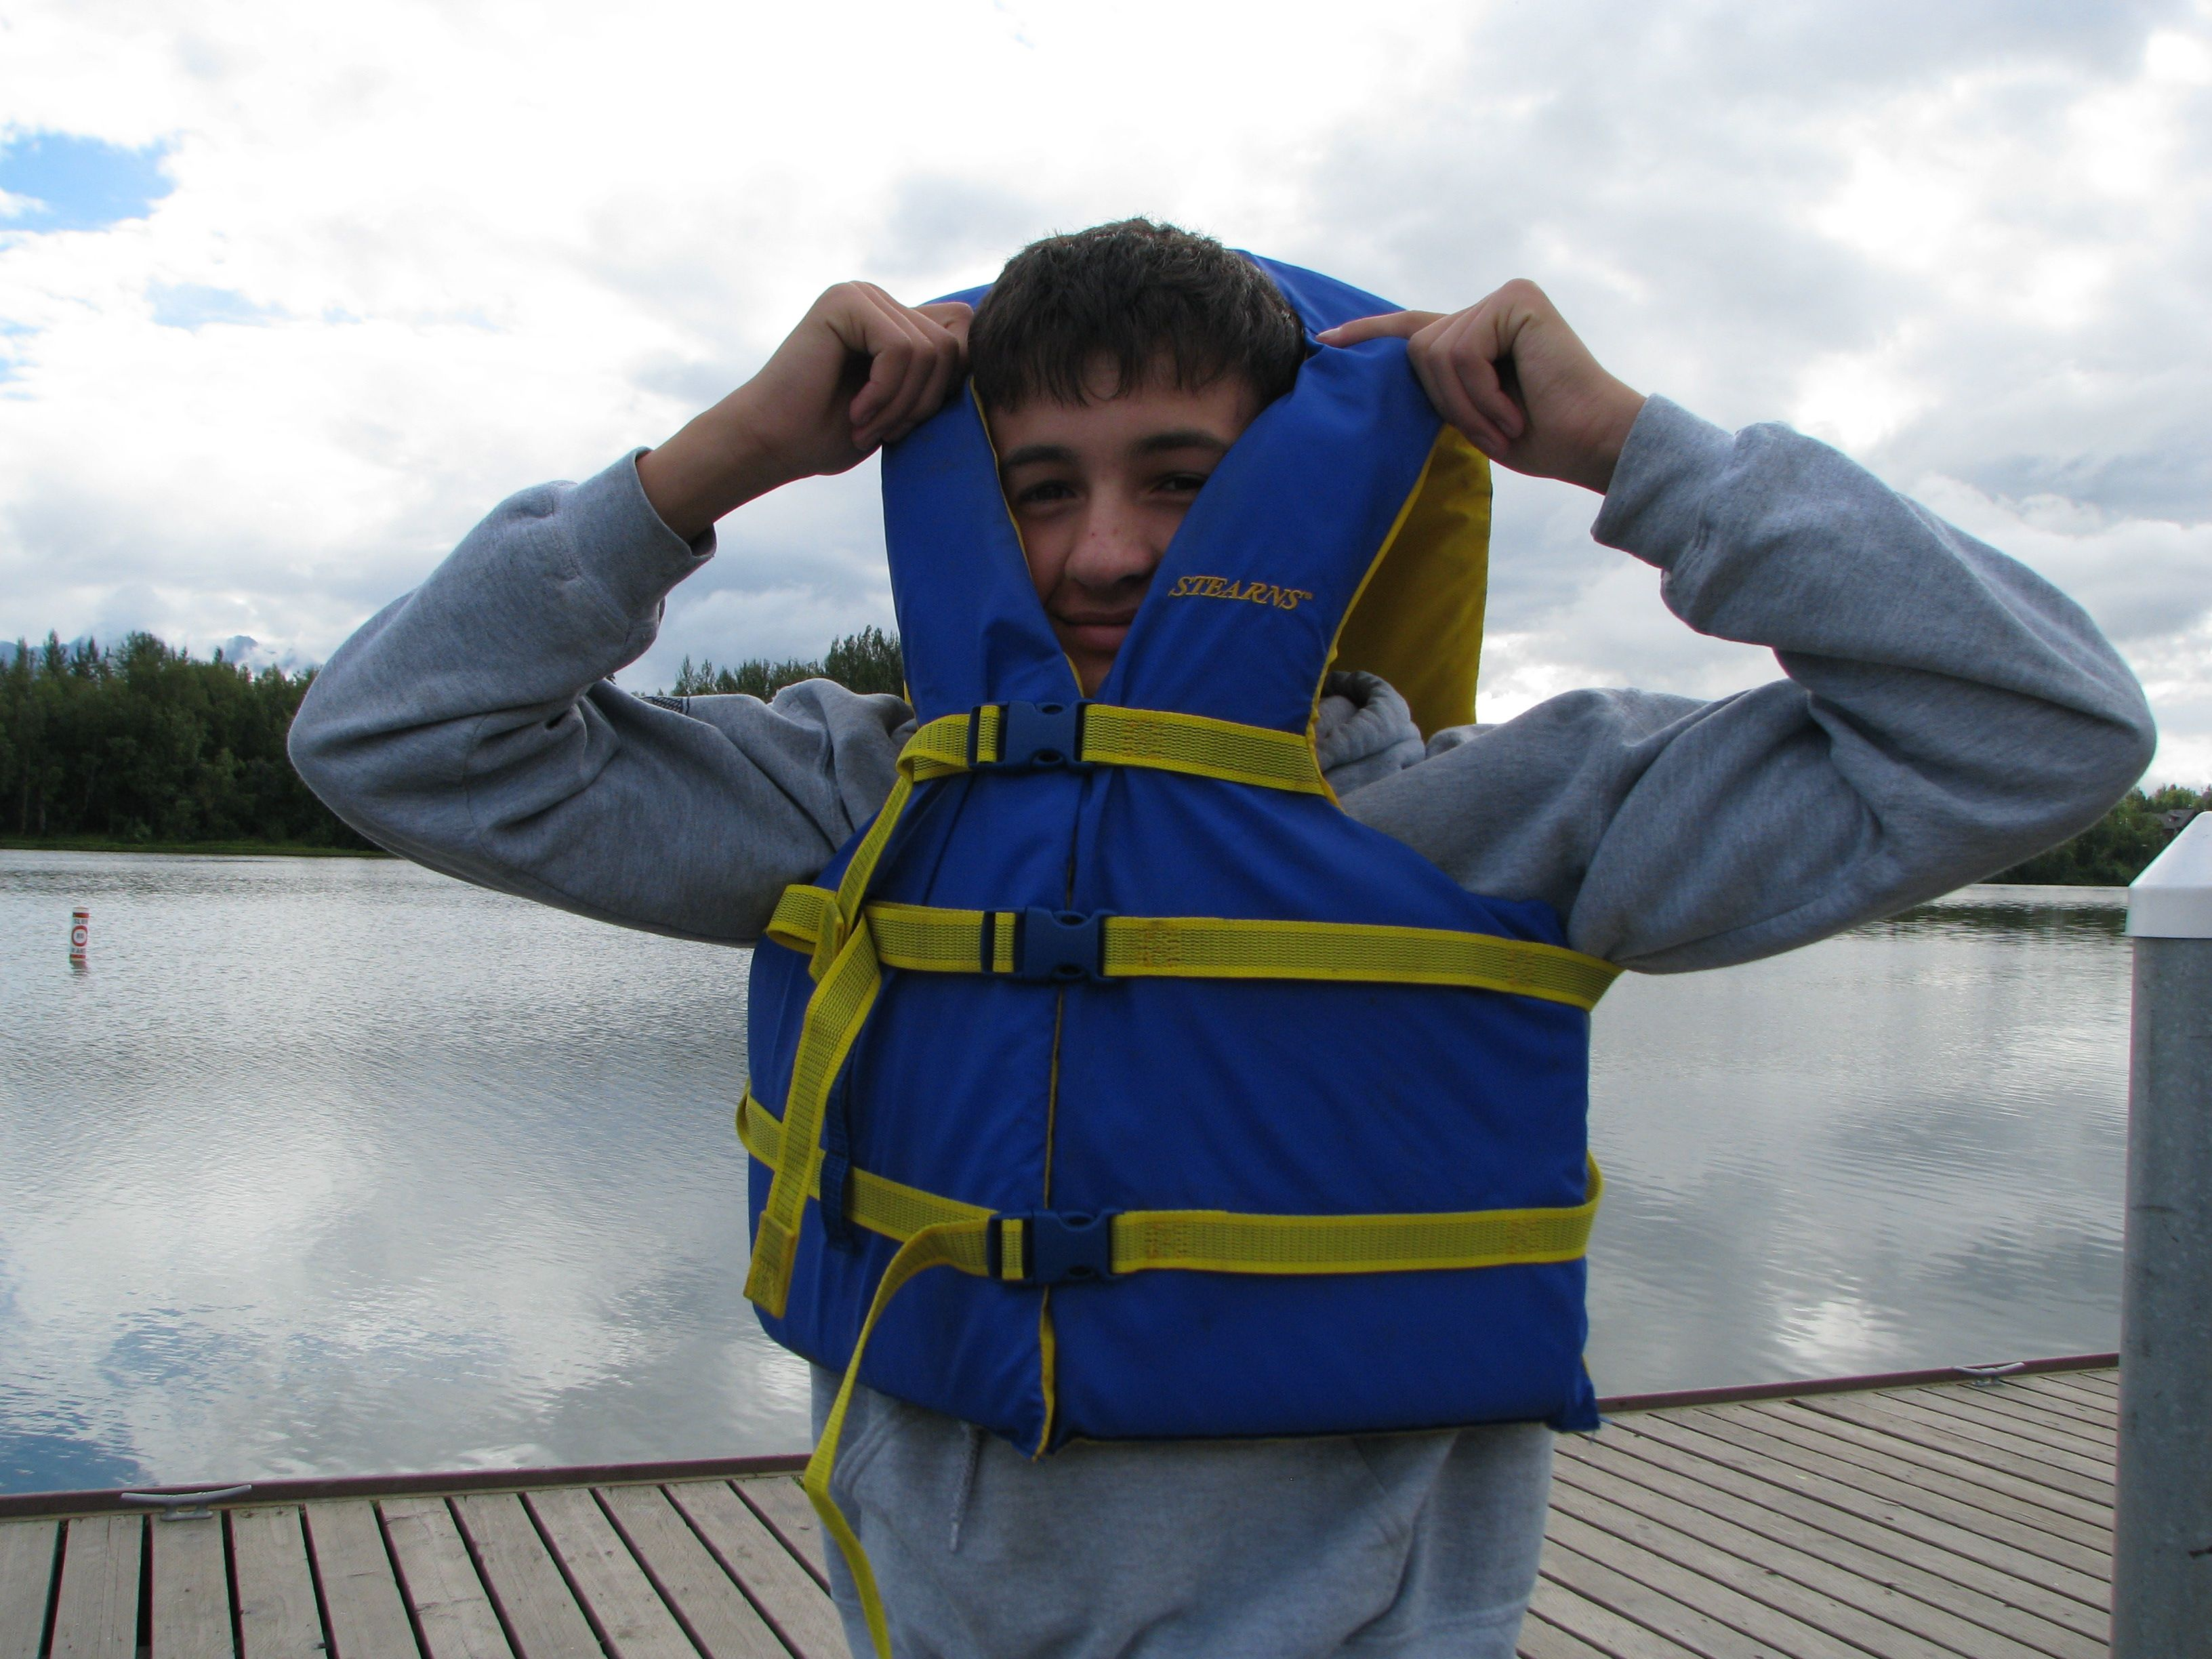 This Life Jacket Is Too Big Wearing A Life Jacket Is Important